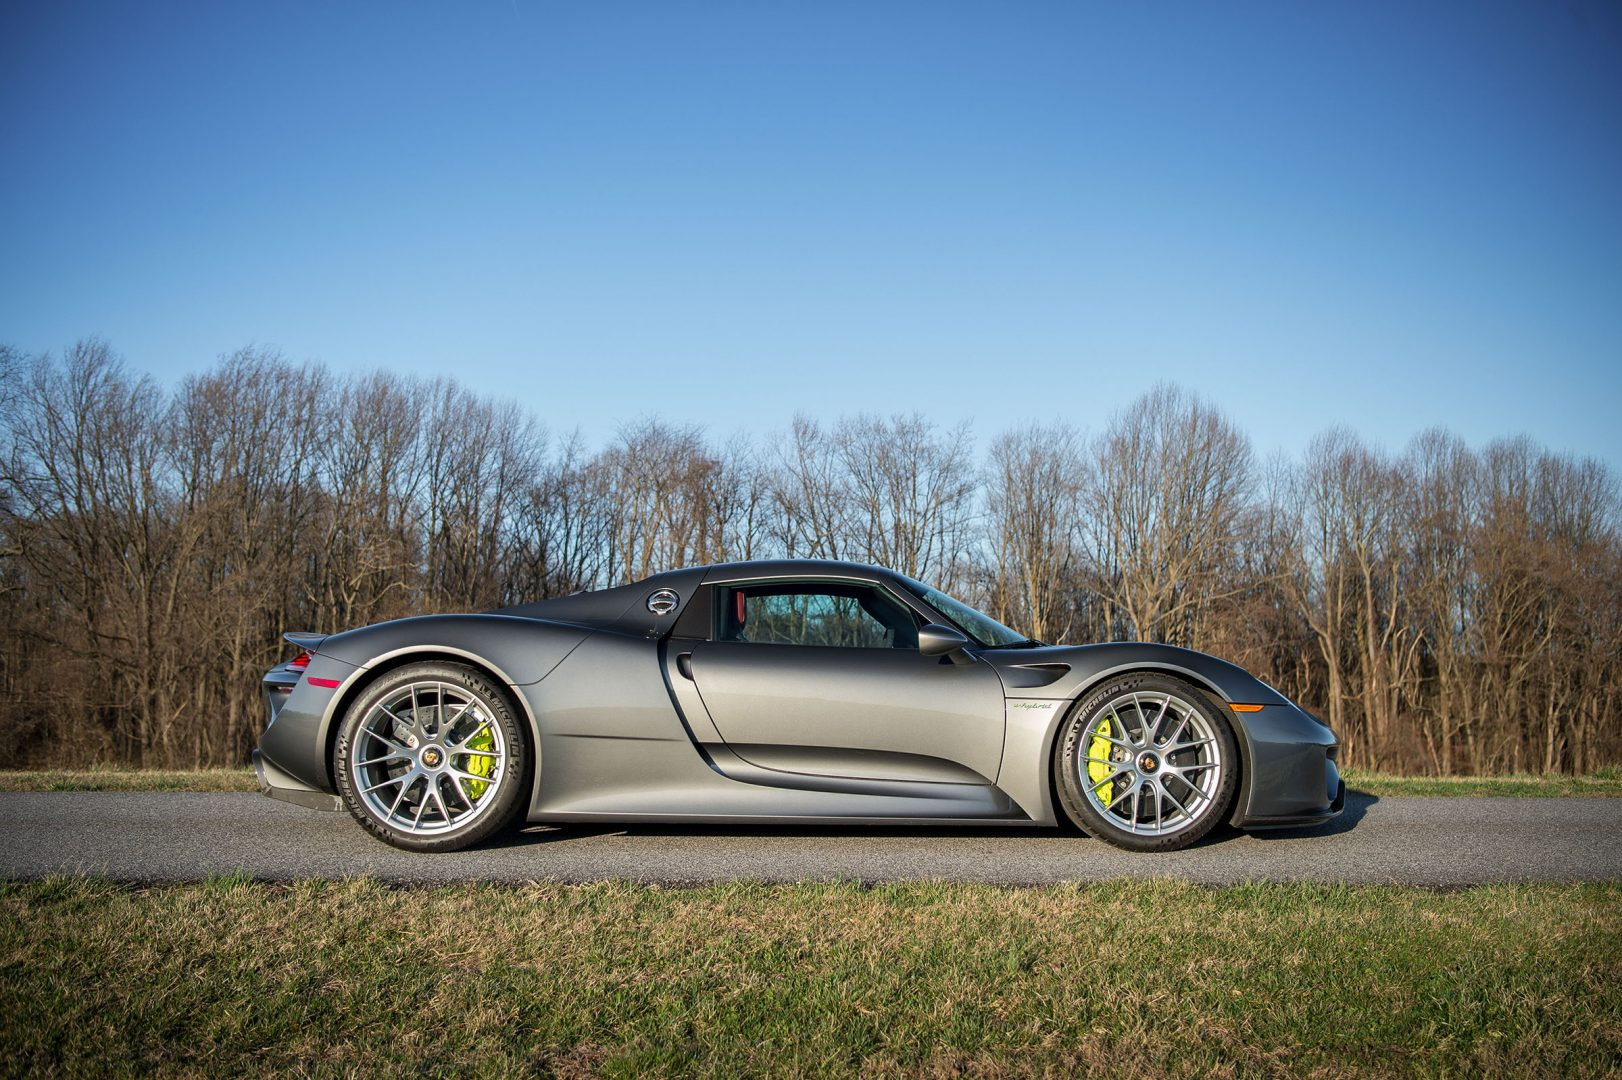 Silver Porsche 918 Spyder profile side view - against early spring trees; #pfs_leasing